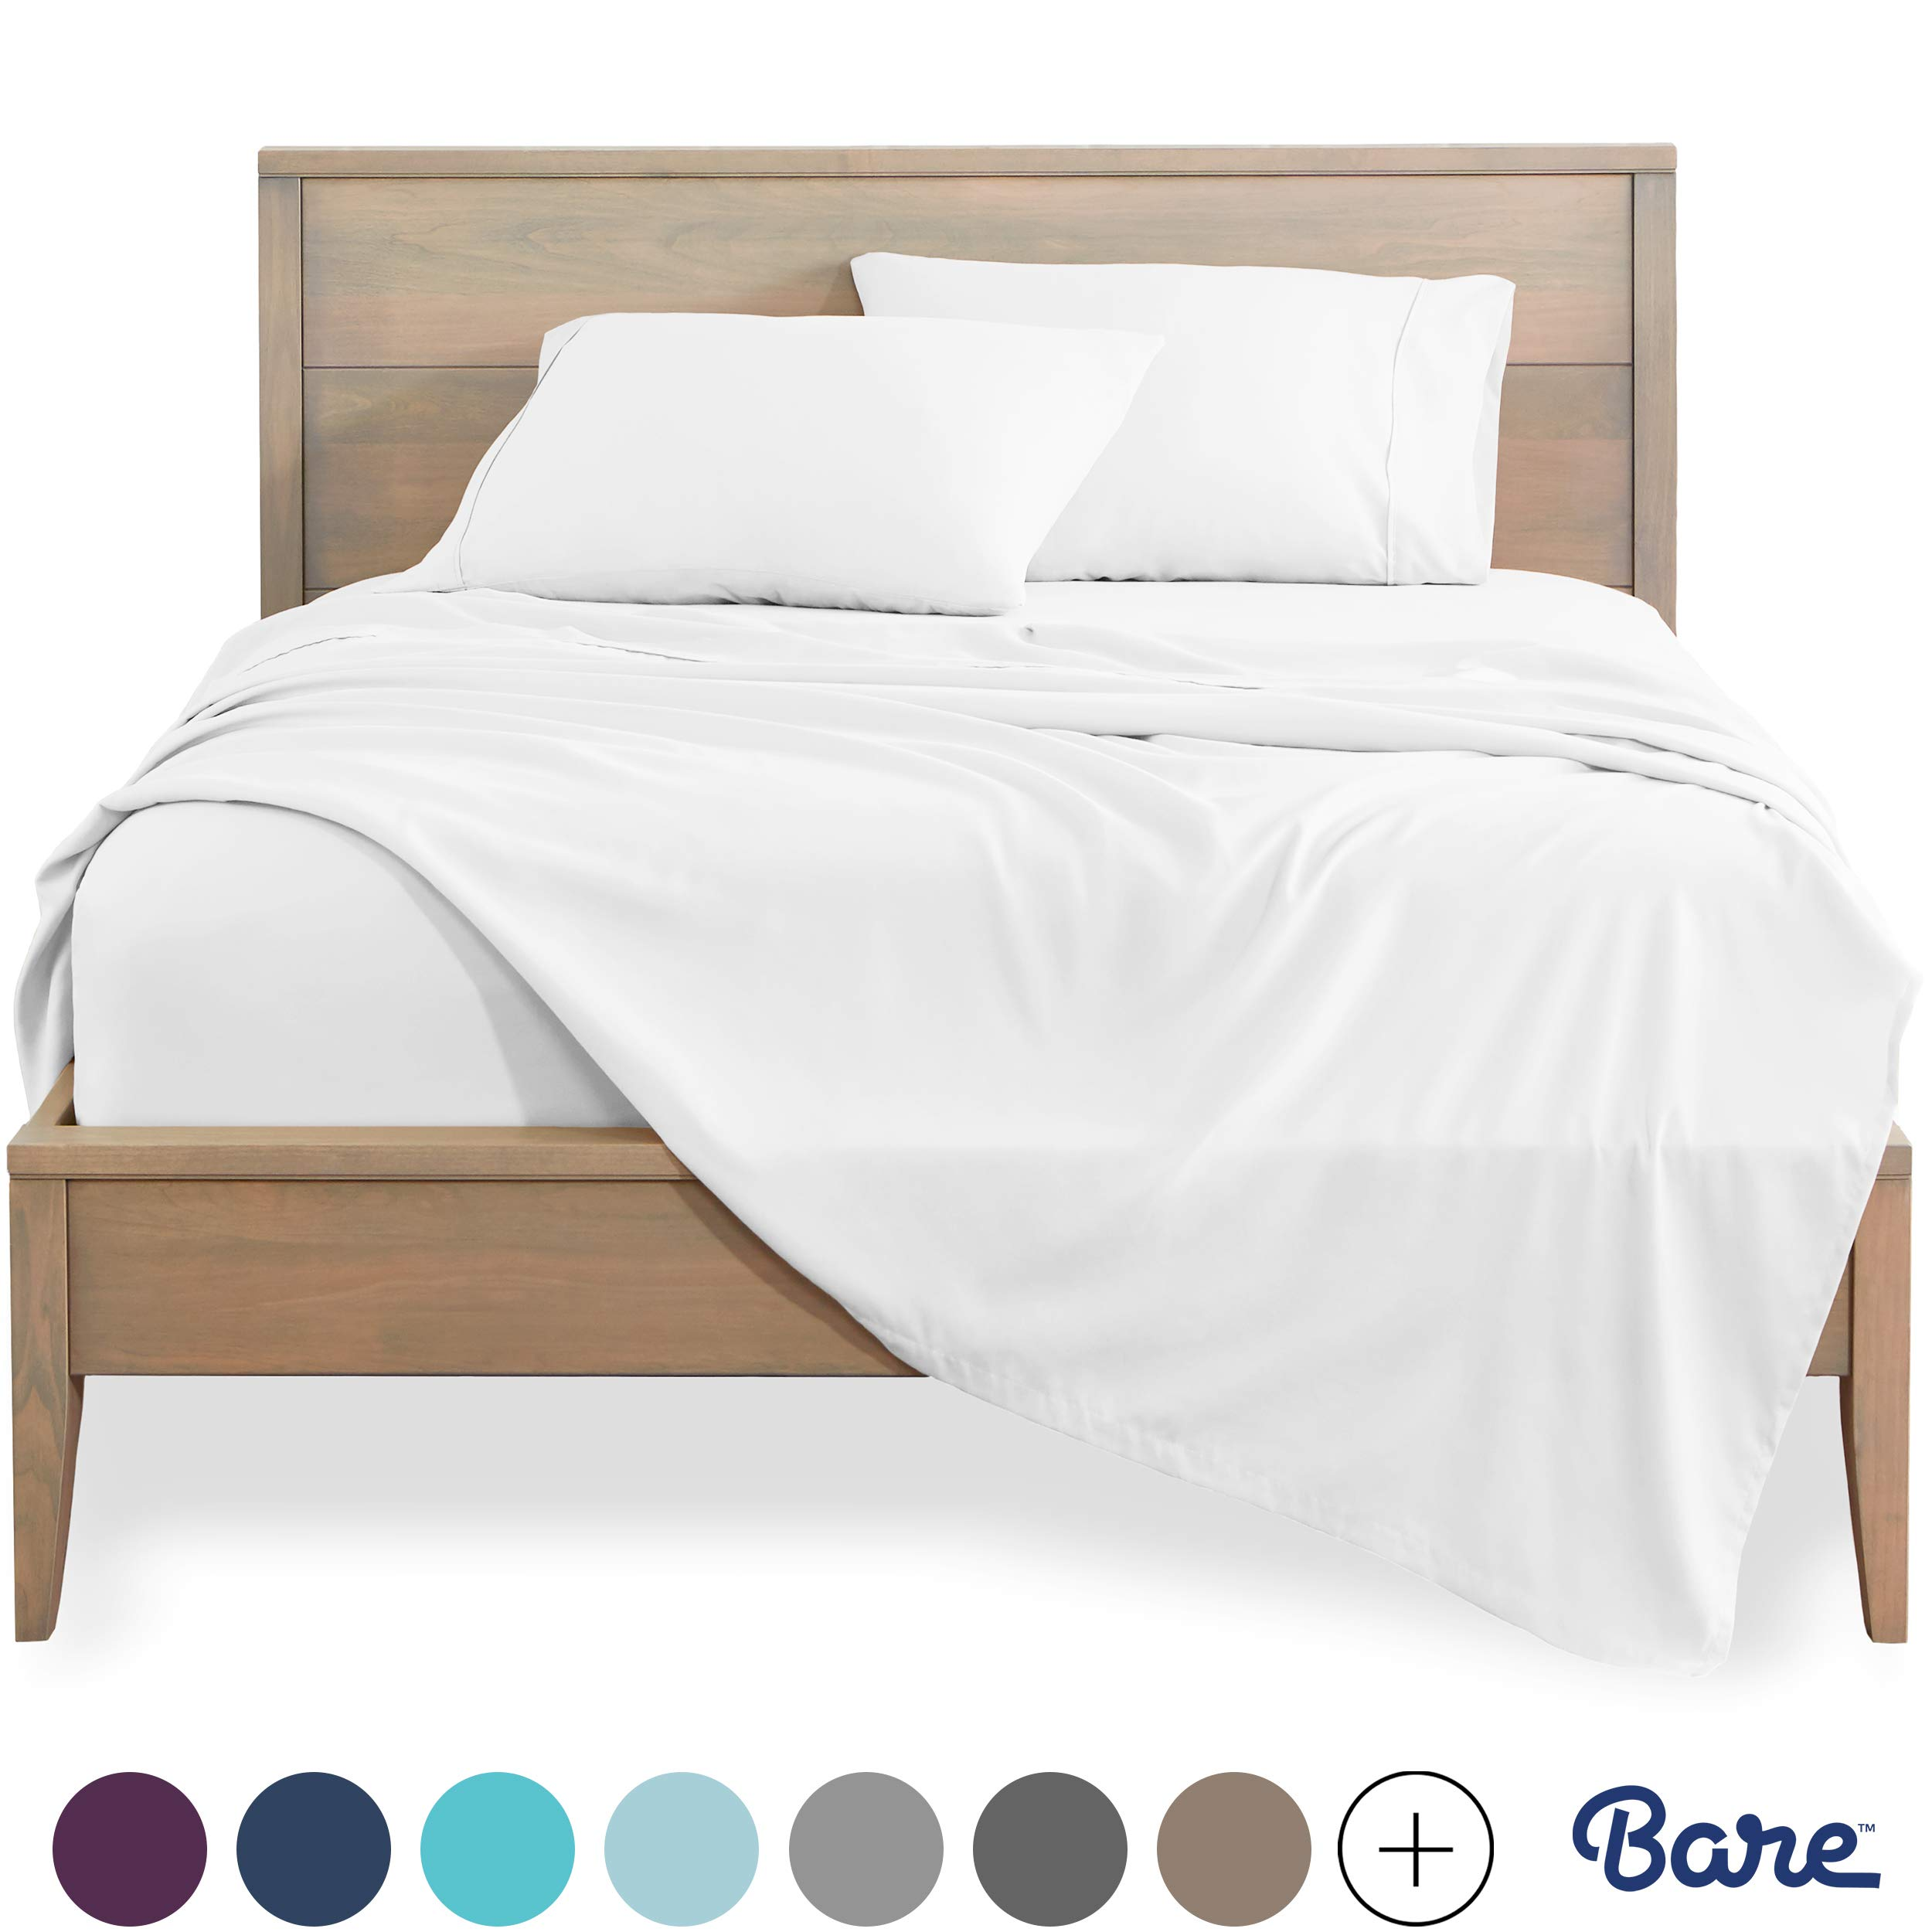 Bare Home Full XL Sheet Set - Kids Size - Premium 1800 Ultra-Soft Microfiber Sheets Full Extra Long - Double Brushed - Hypoallergenic - Wrinkle Resistant (Full XL, Cool White)